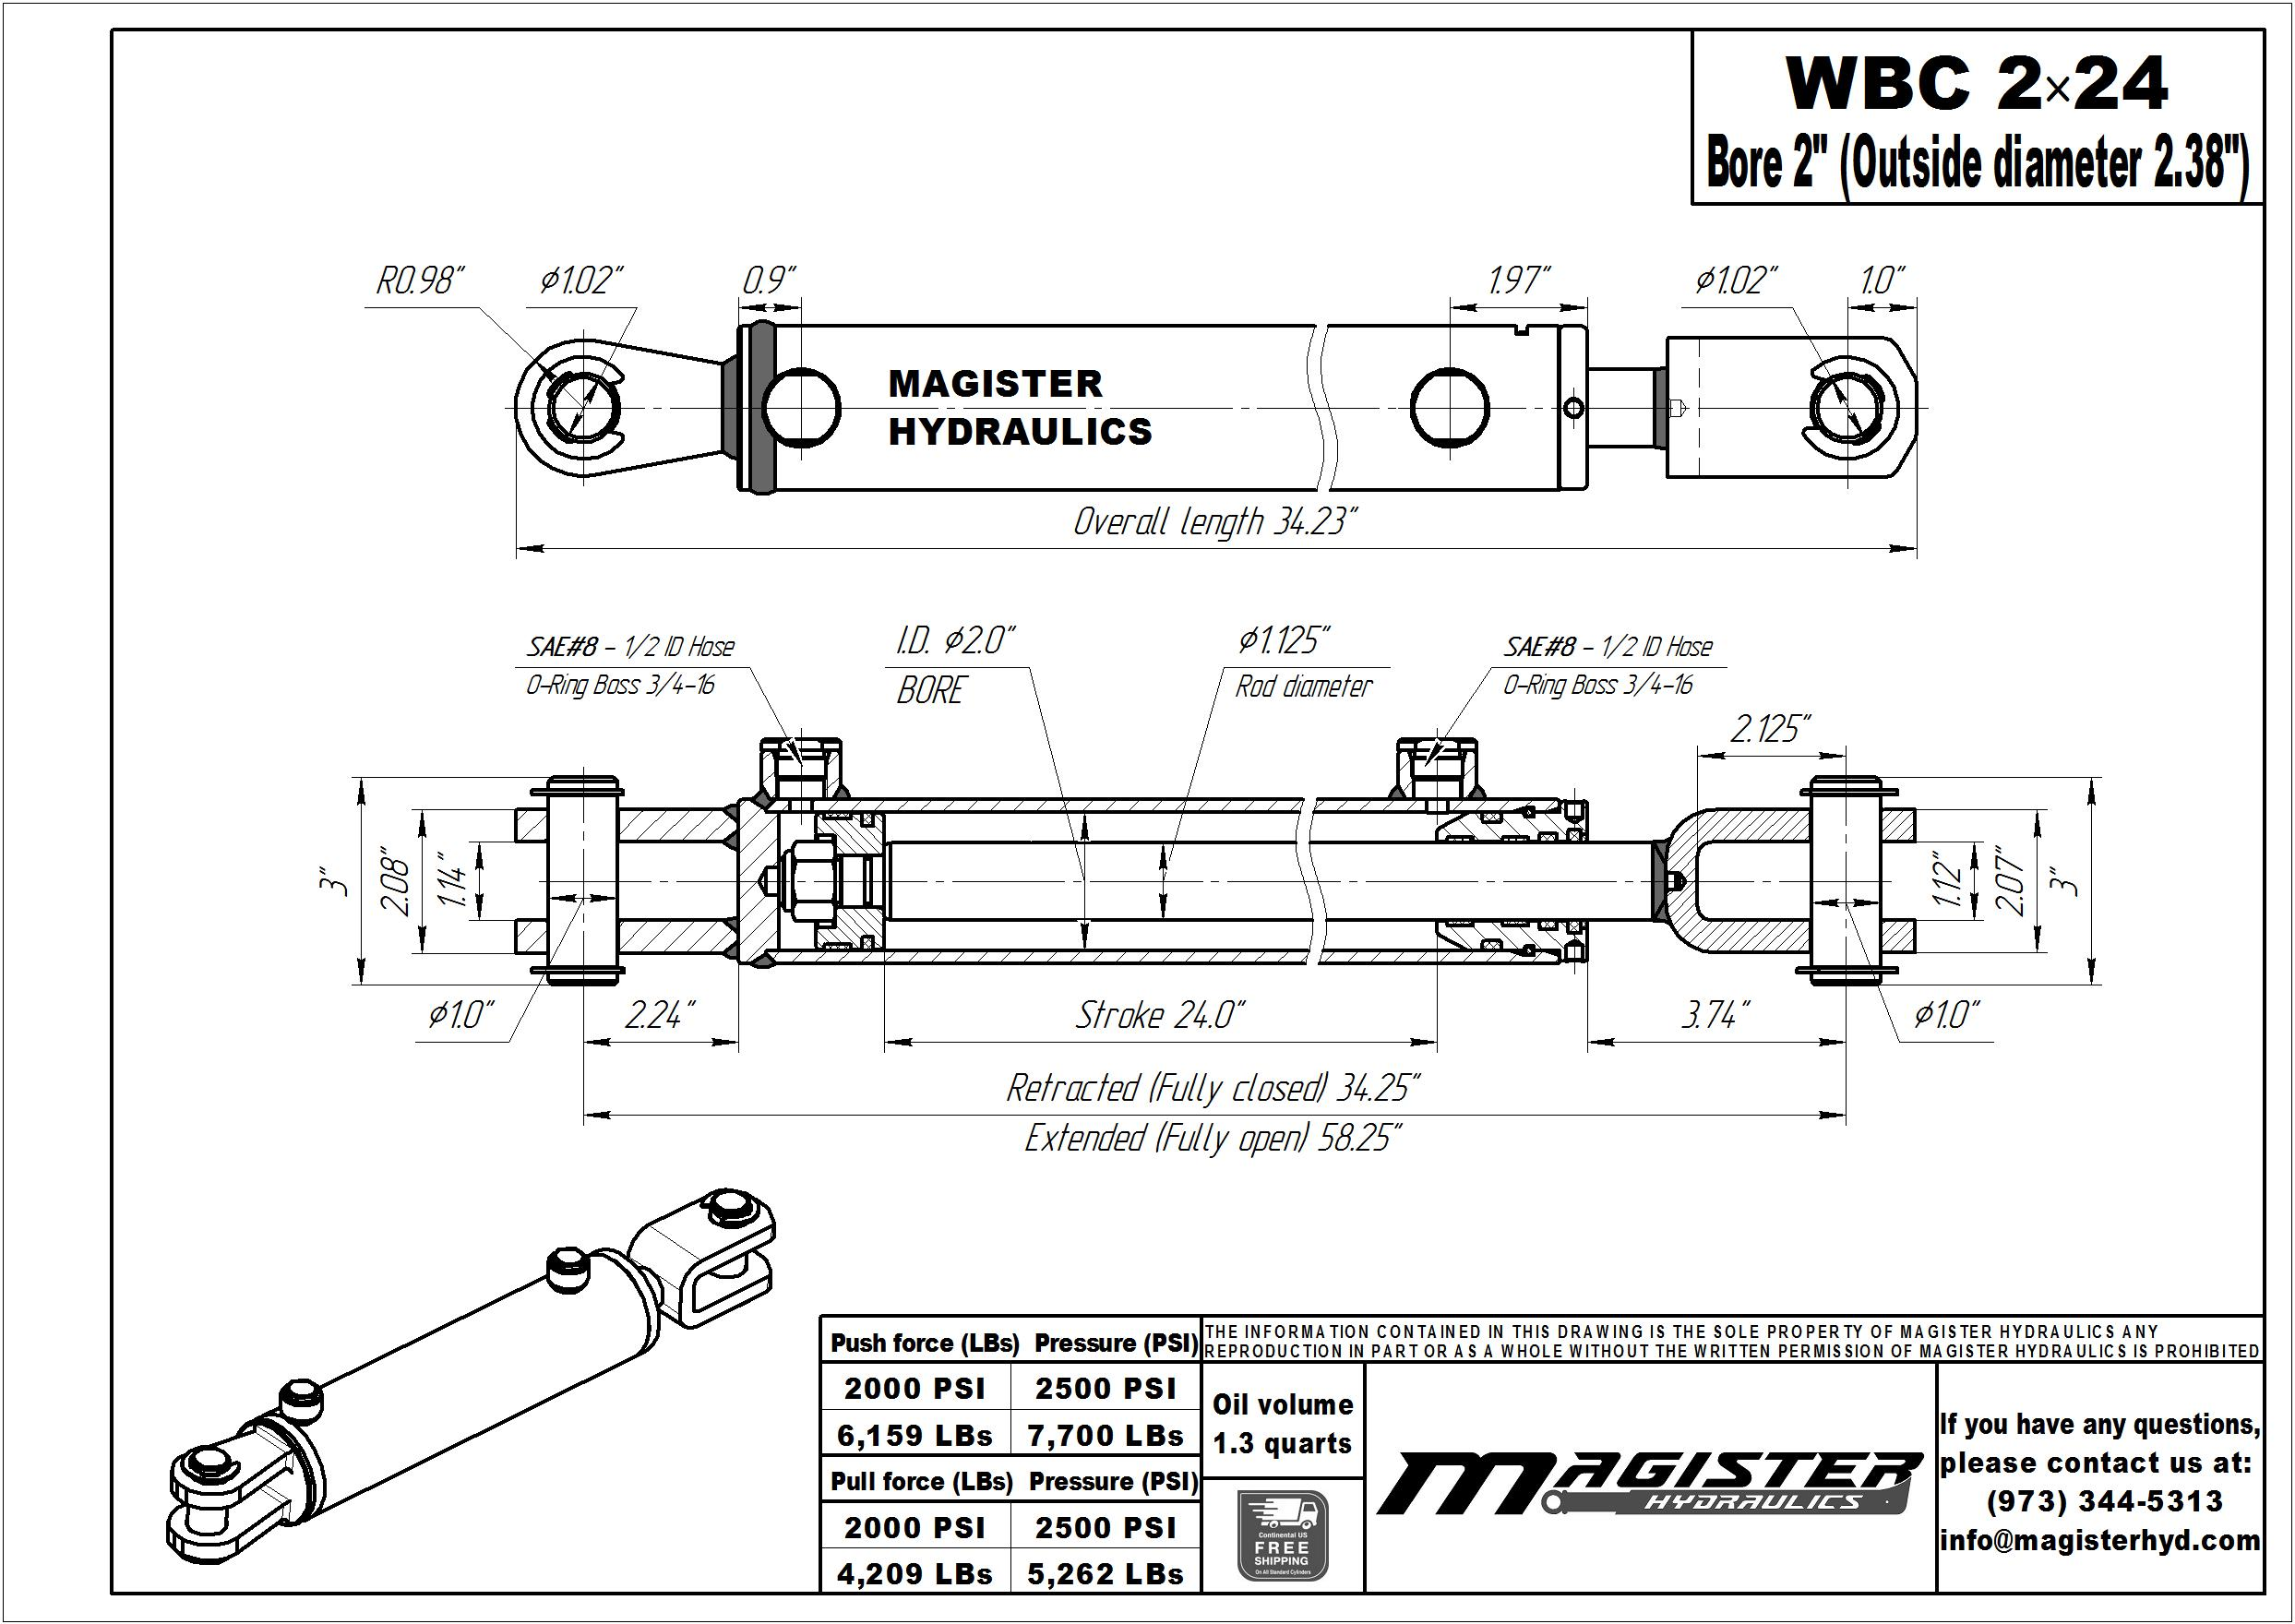 2 bore x 24 stroke hydraulic cylinder, ag clevis double acting cylinder | Magister Hydraulics